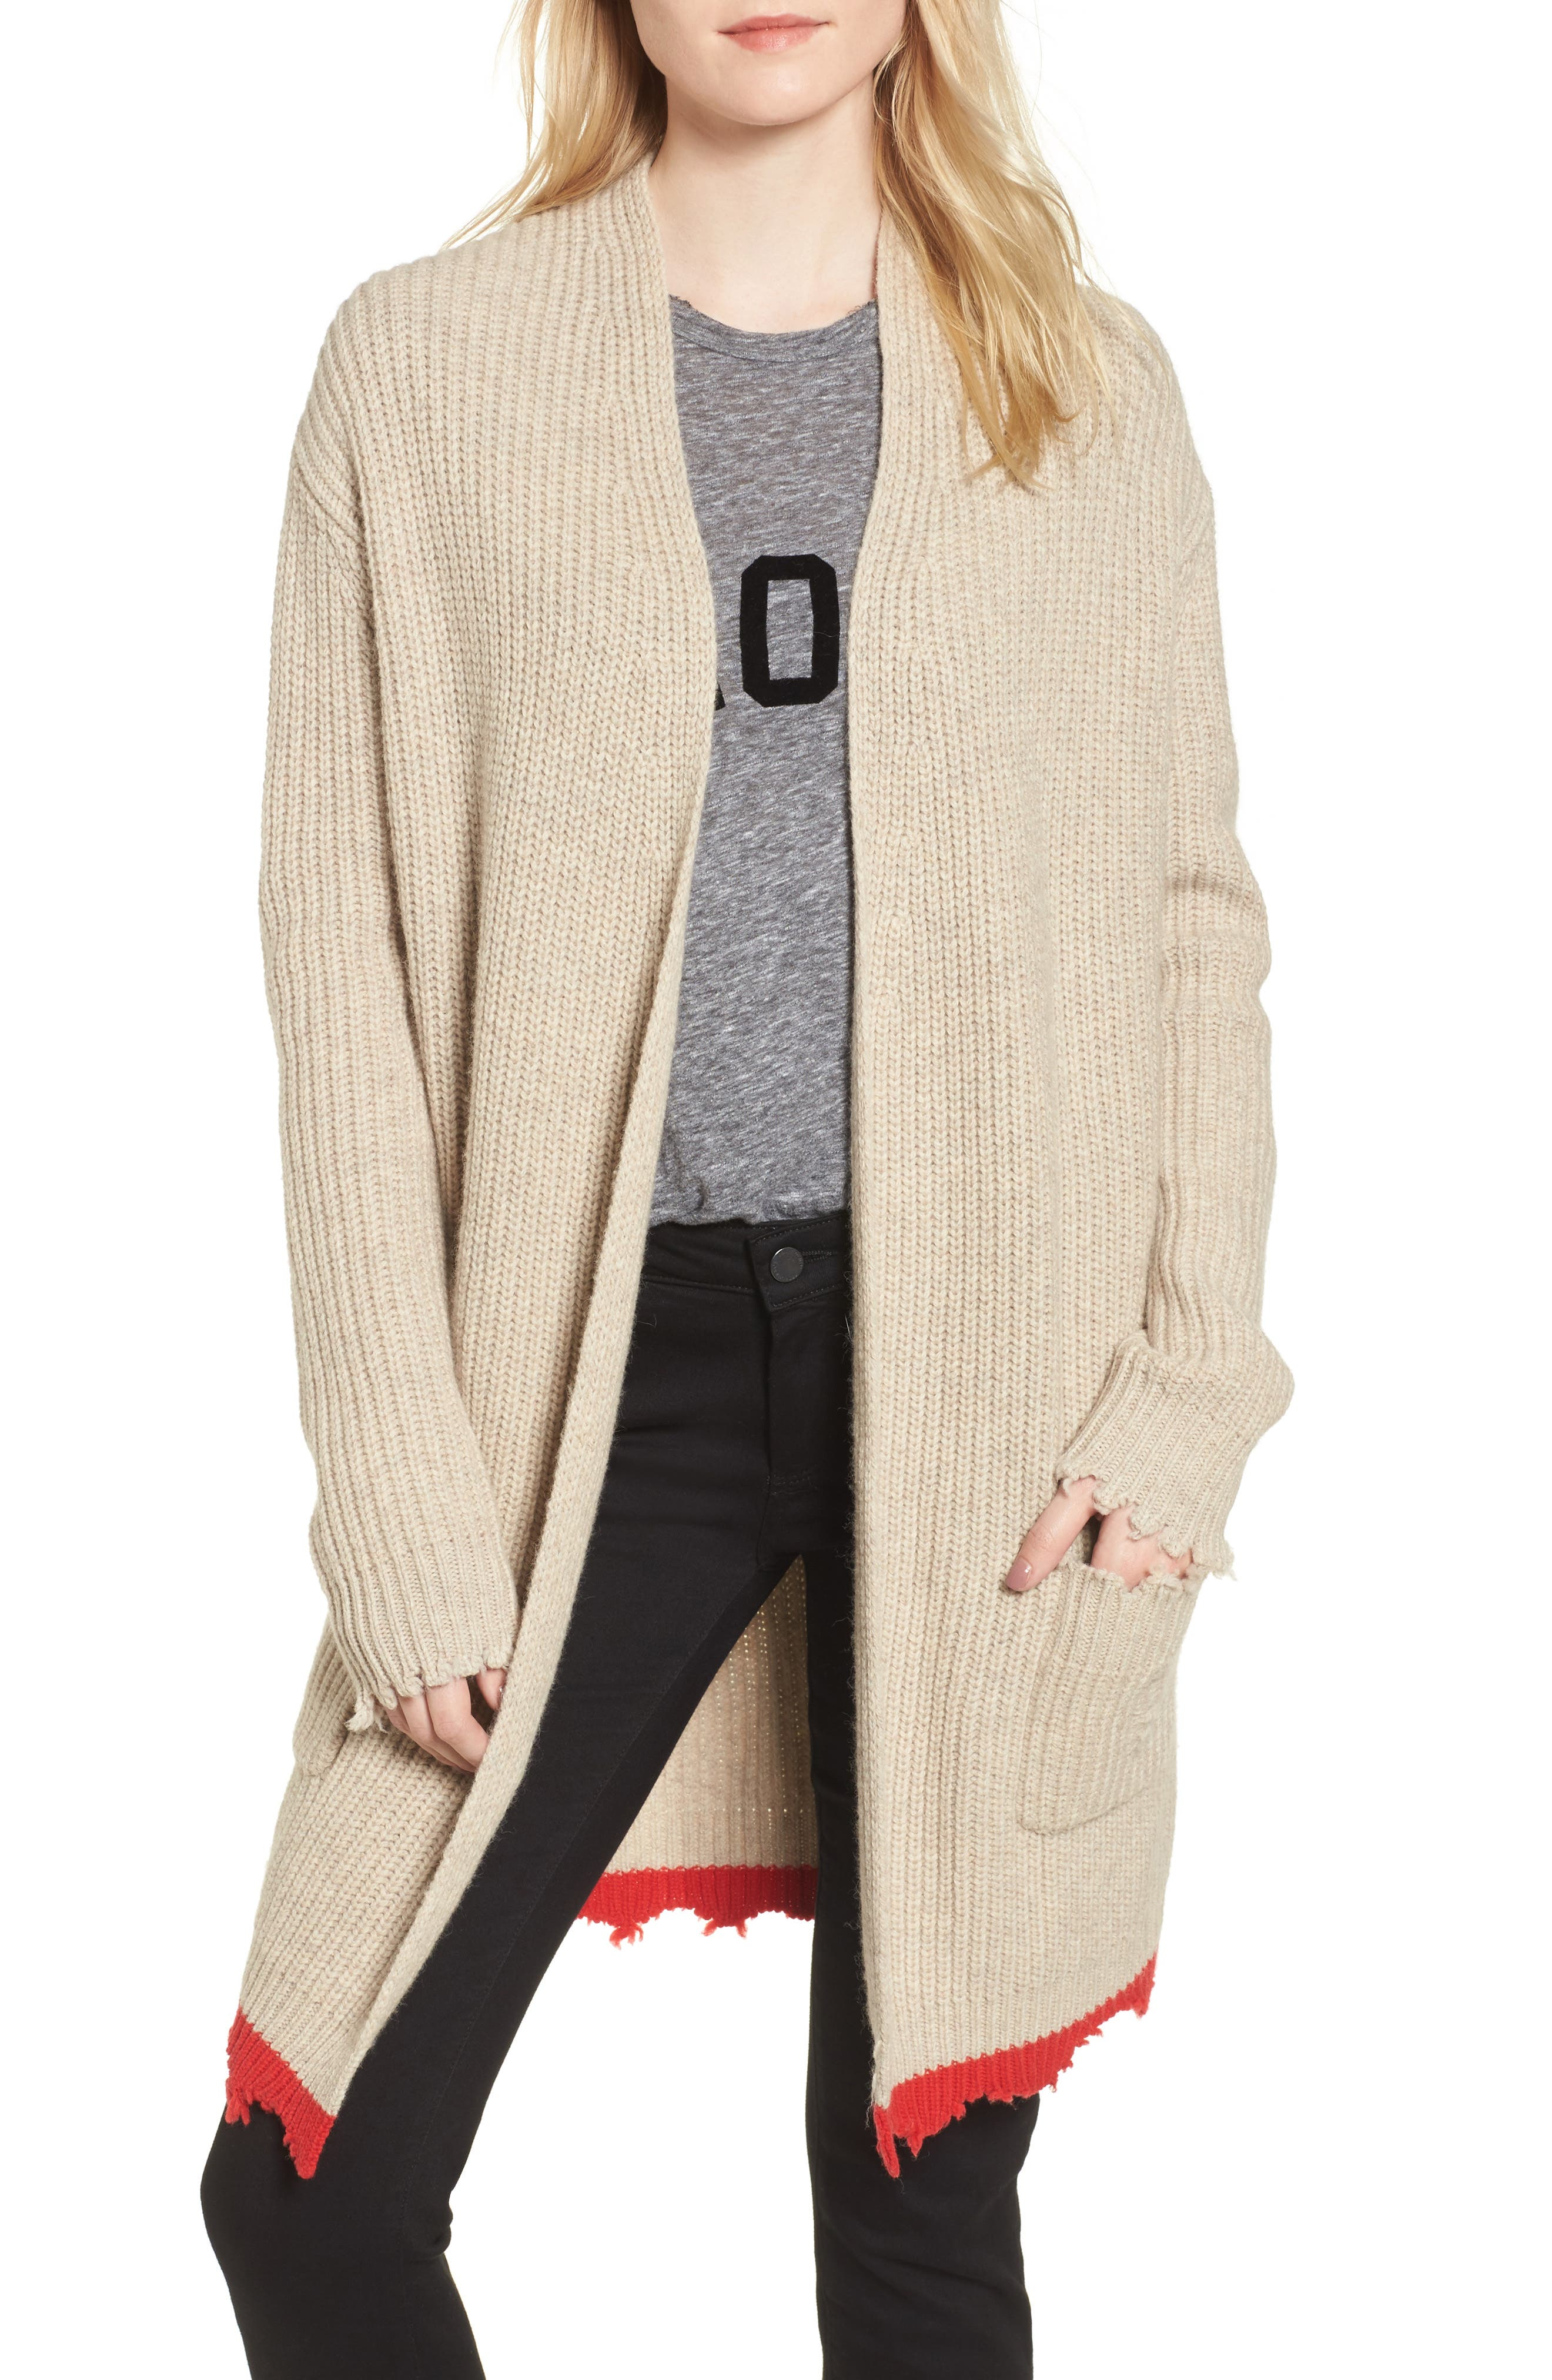 Alternate Image 1 Selected - Zadig & Voltaire Rita Cardigan Sweater